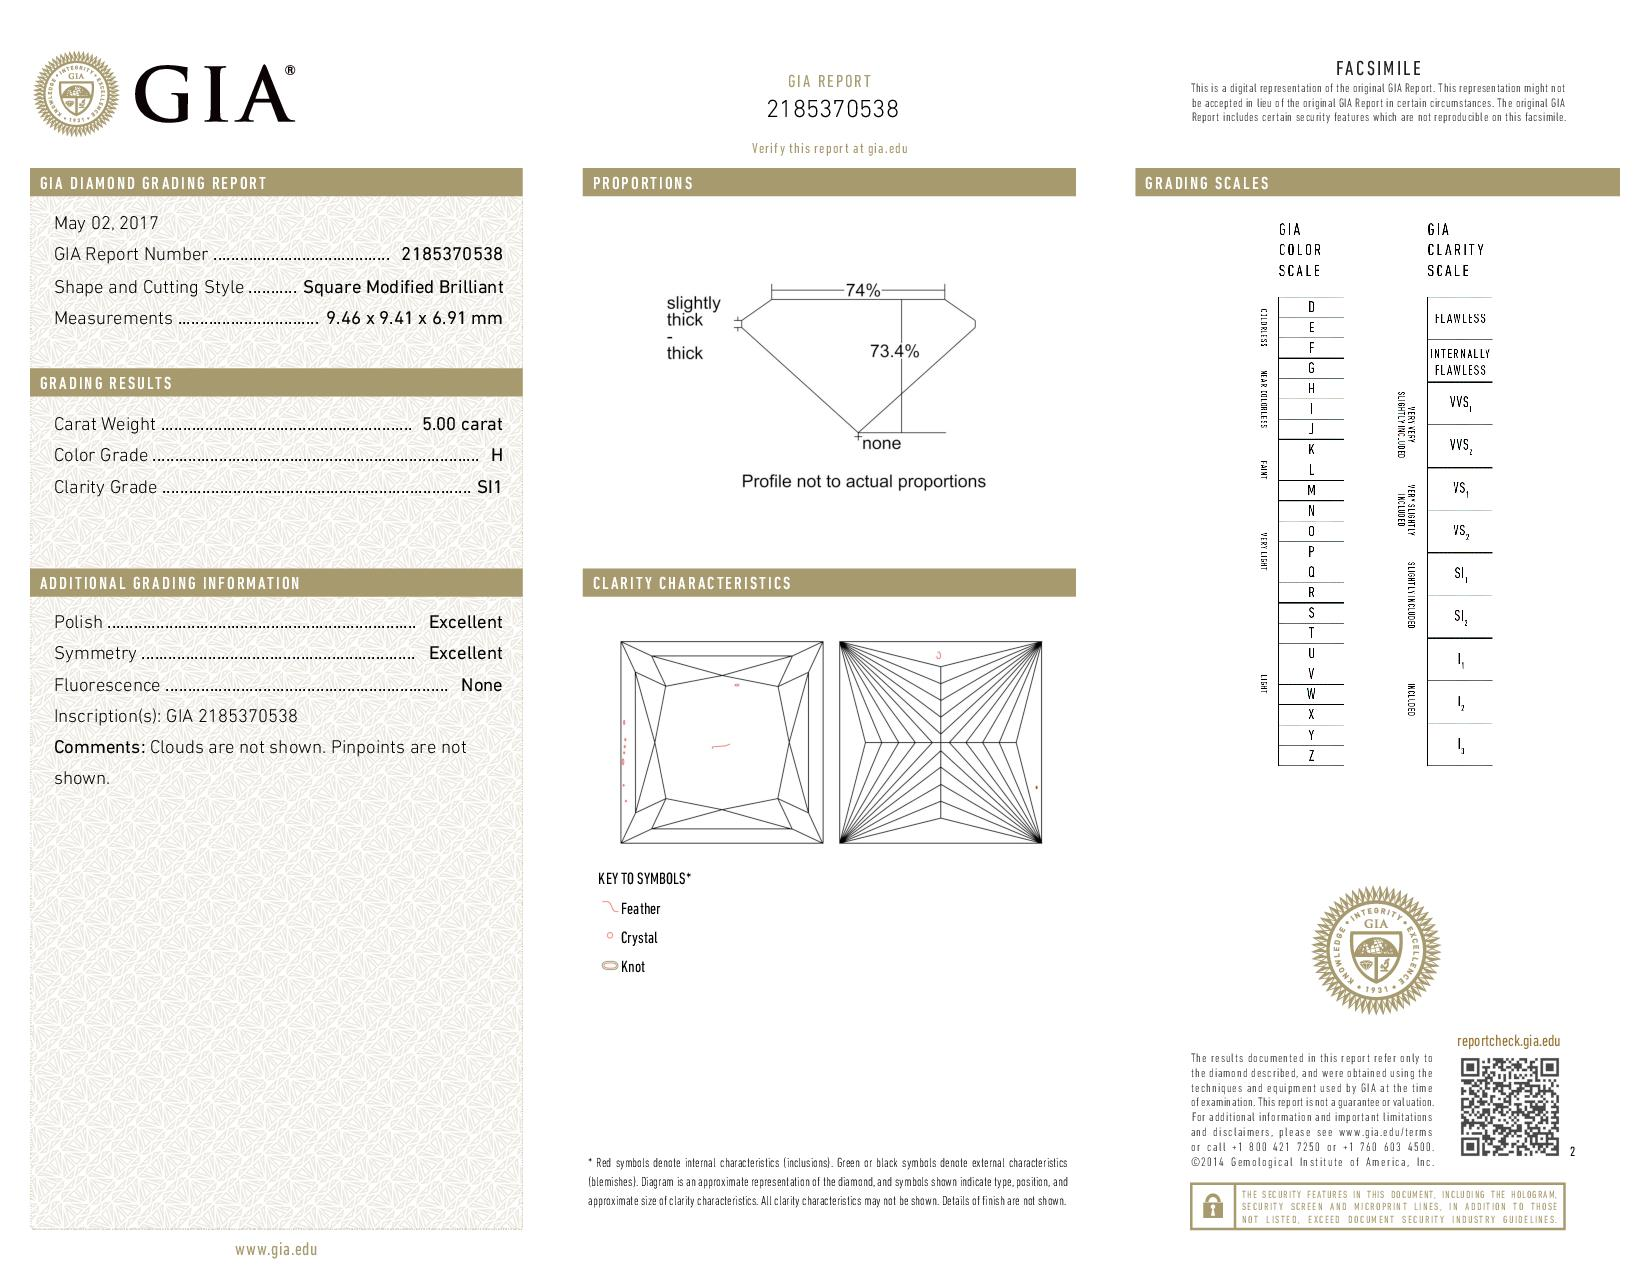 This is a 5.00 carat princess shape, H color, SI1 clarity natural diamond accompanied by a GIA grading report.